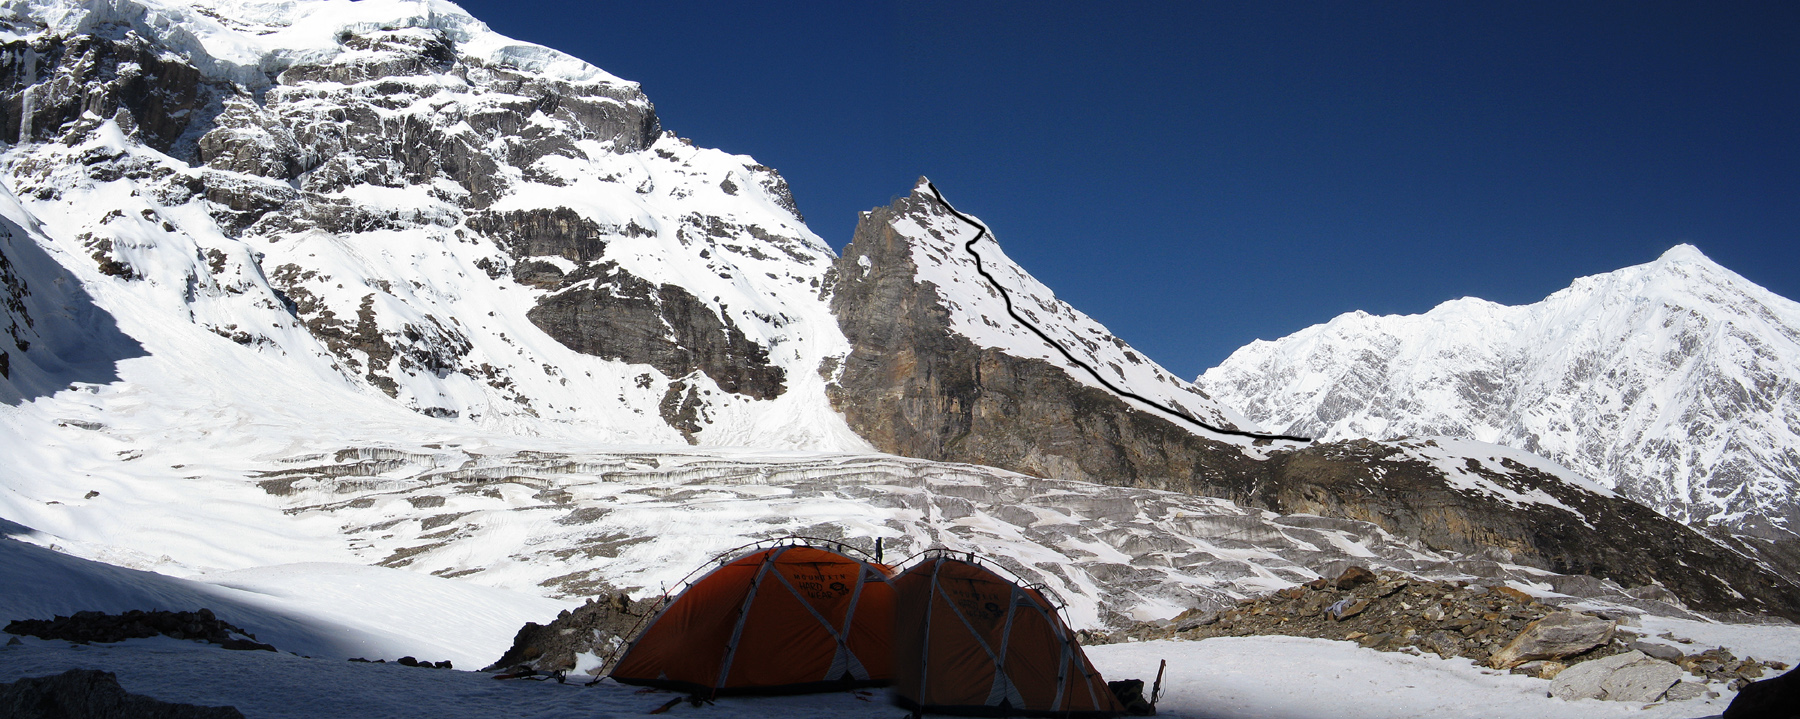 Kartik, with route of first ascent marked, lies to the right of the serac torn north face of Peak 5,812m. In the right distance is Chaukamba (7,138m). Daniela Teixeira